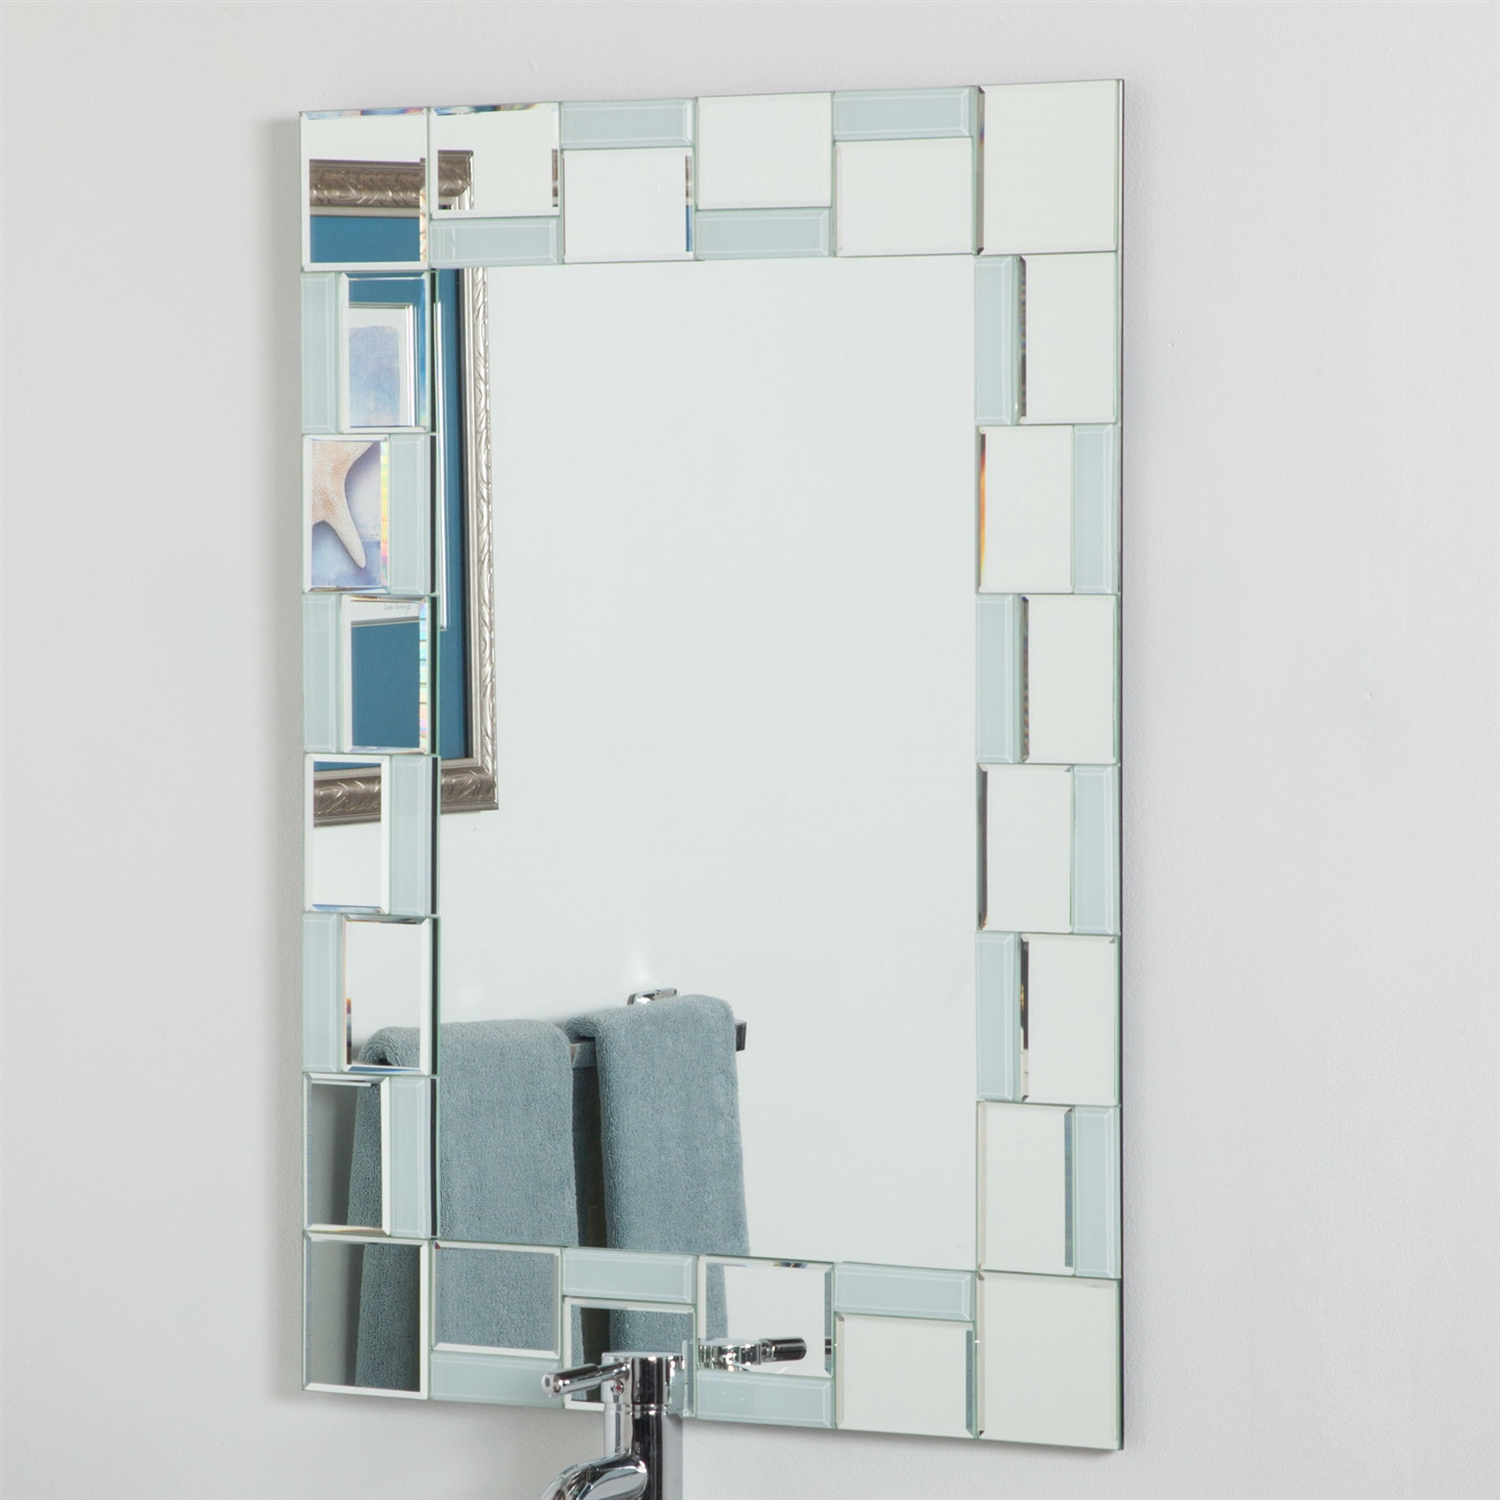 Contemporary 315 X 236 Inch Rectangle Bathroom Mirror With Hand Cut Mirrors Edging